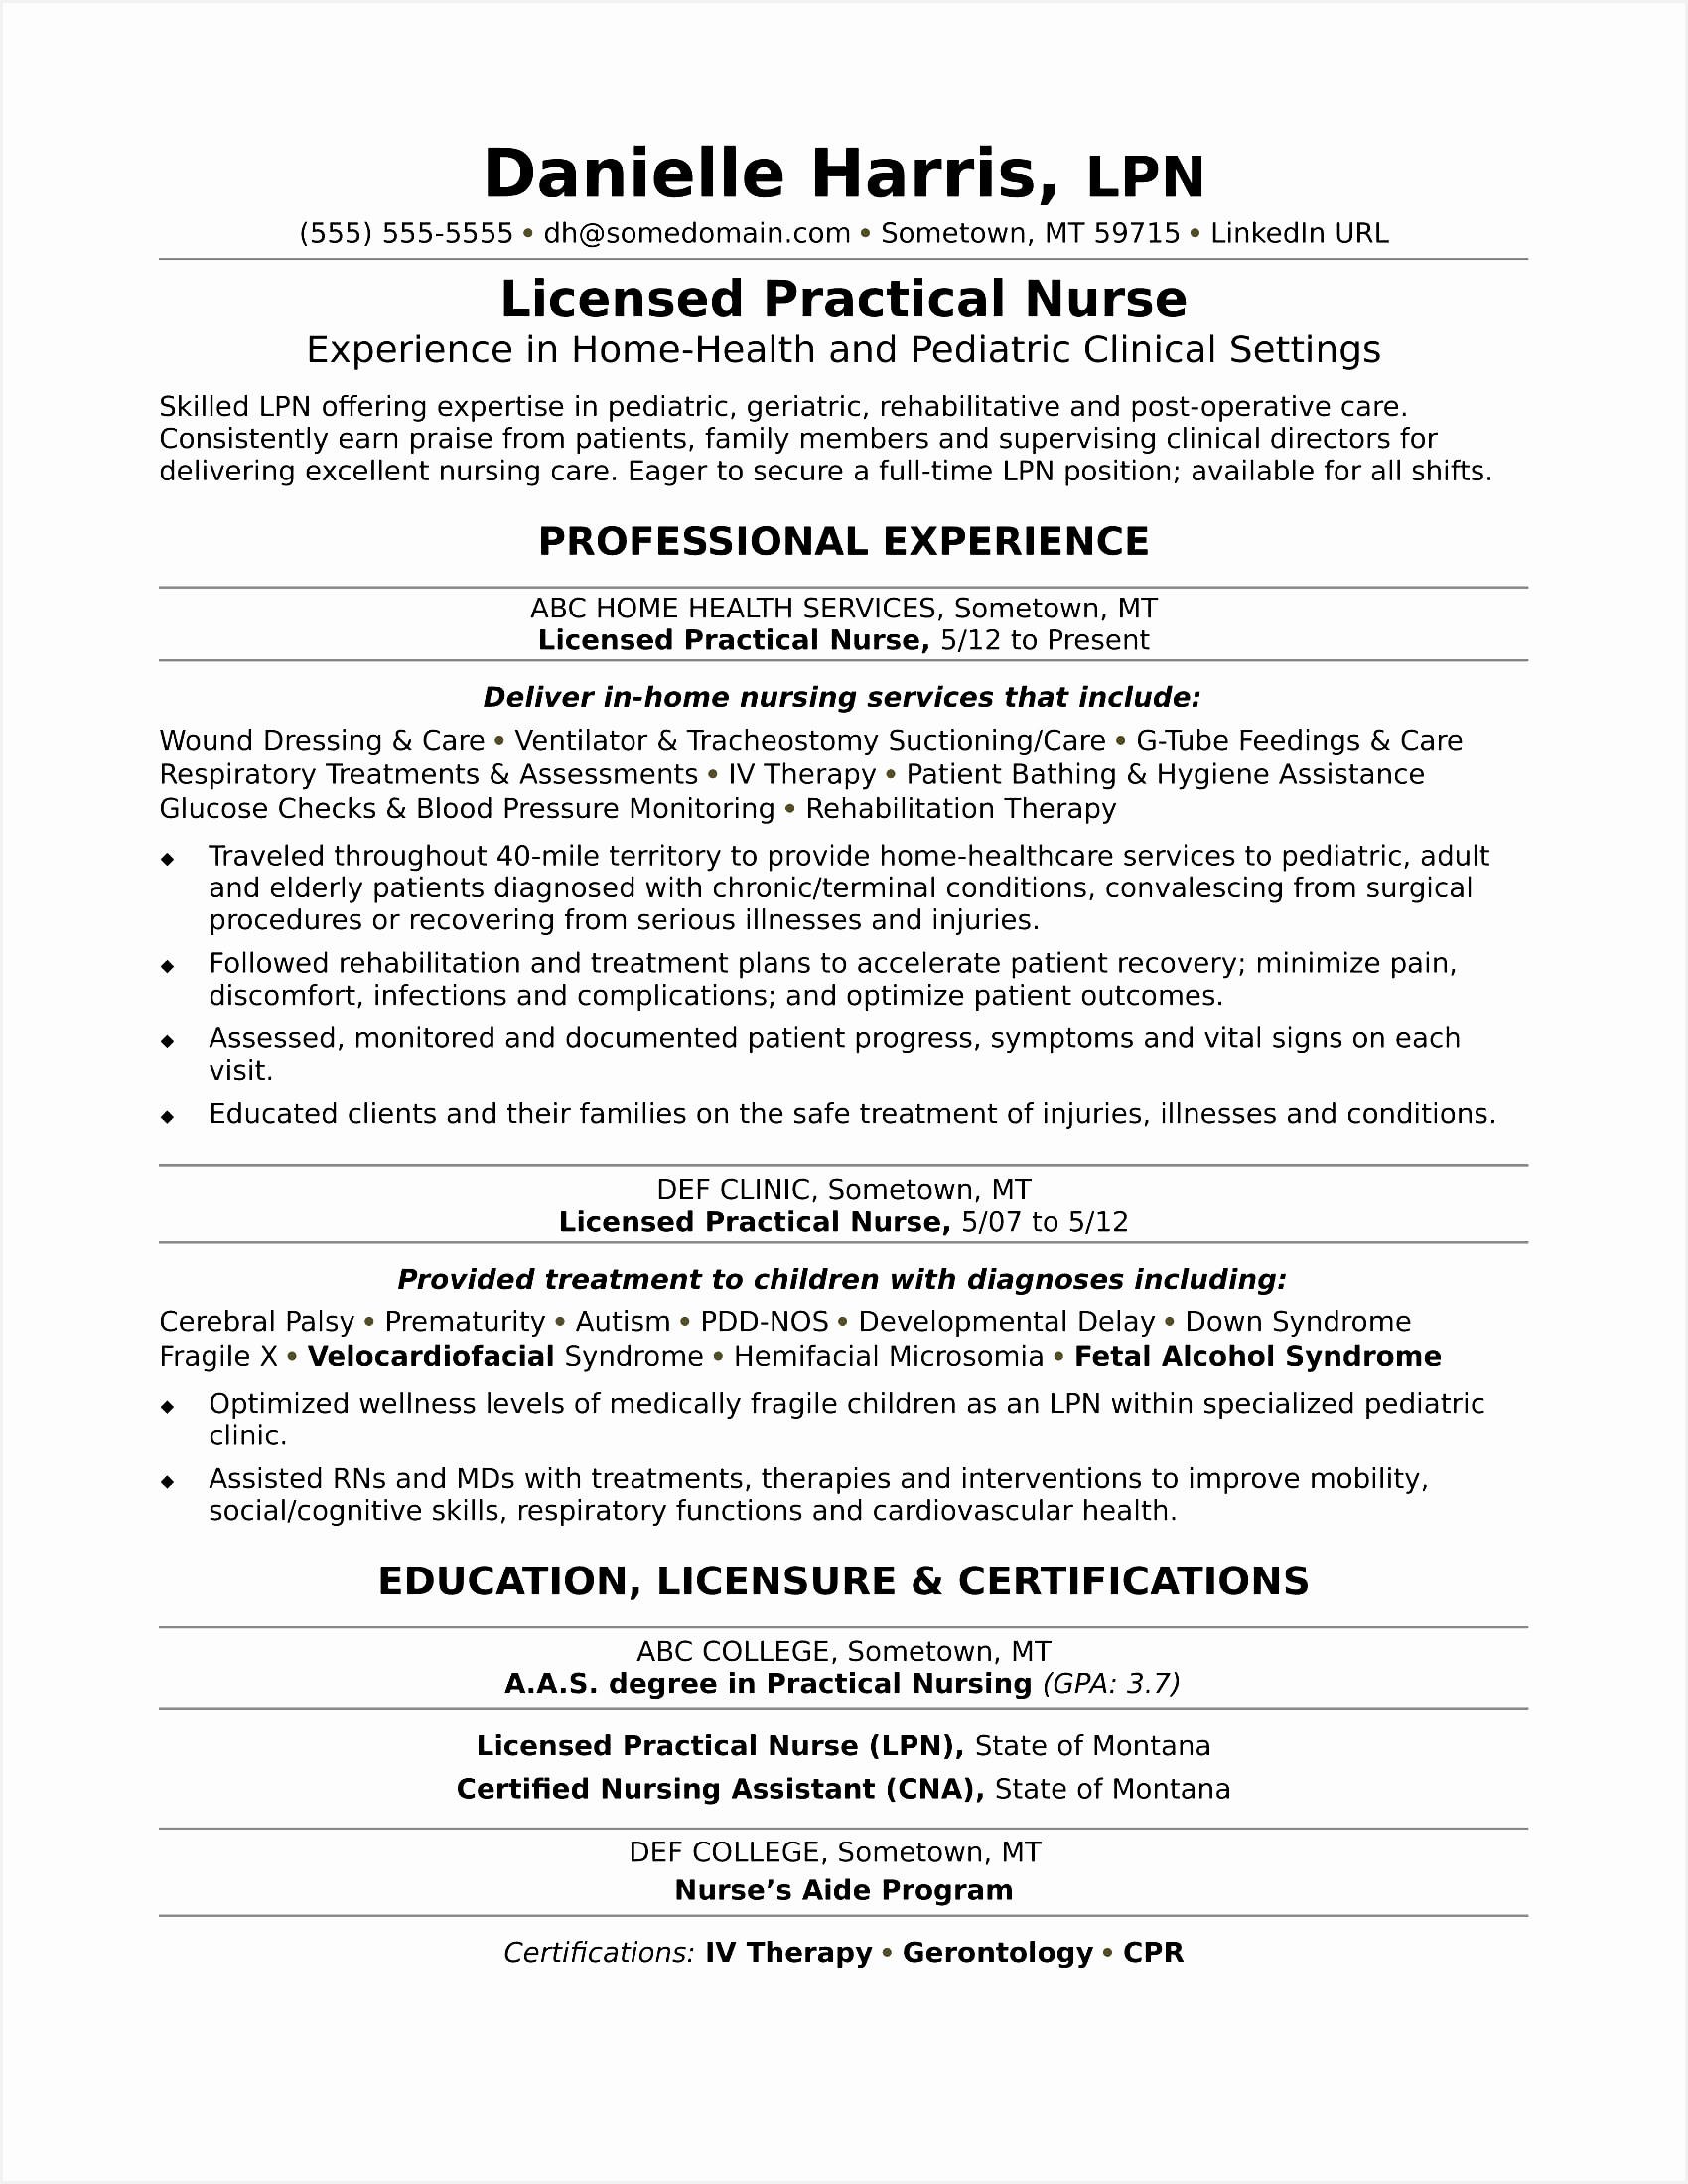 Free Registered Nurse Resume Templates Inspirational Elegant New Nurse Resume Awesome Nurse Resume 0d Wallpapers 4222001700